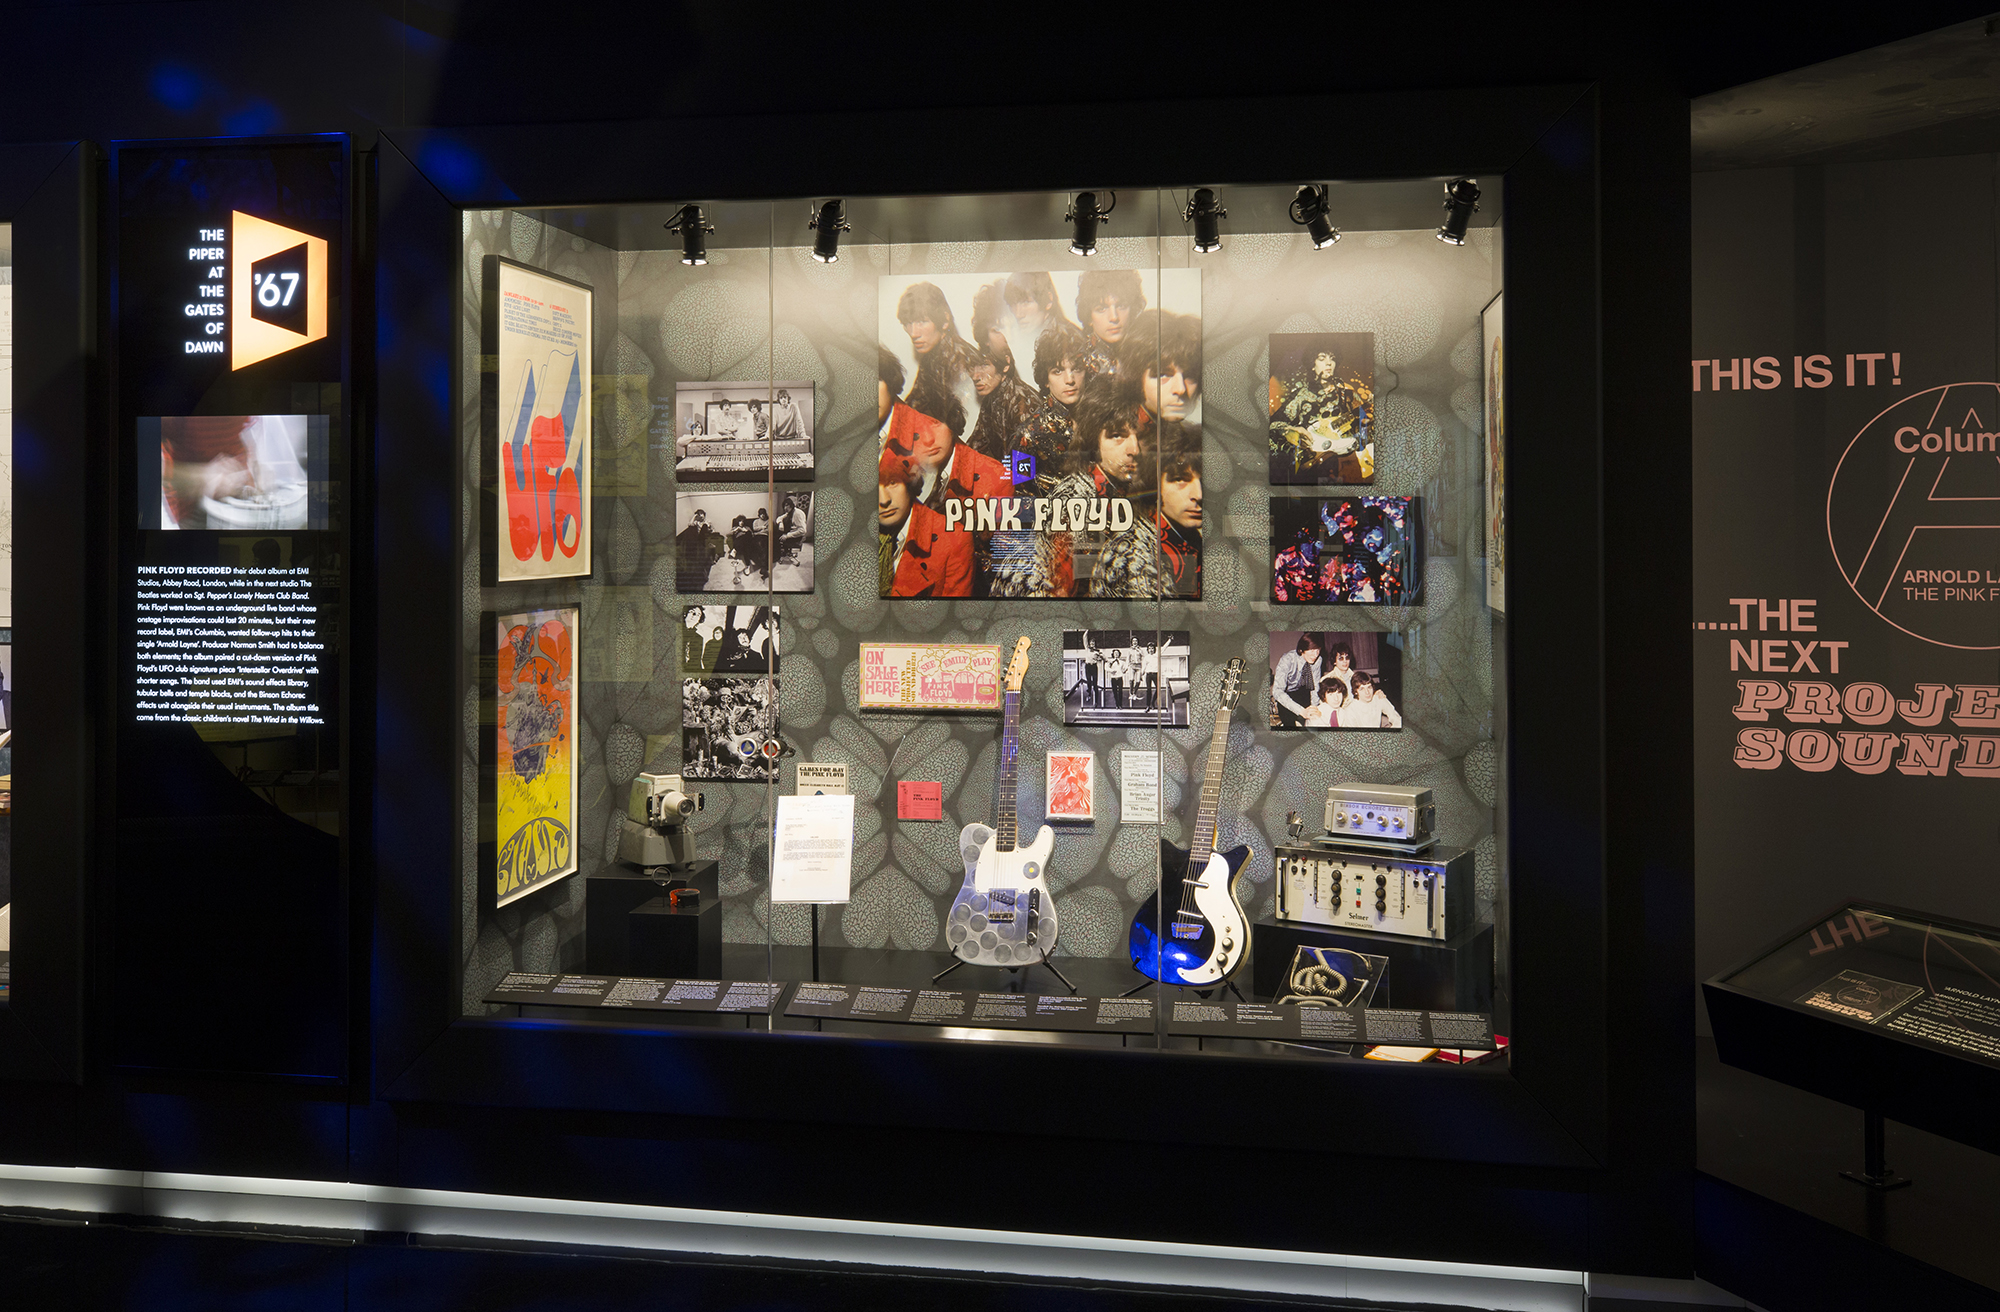 10 things to see at the V&A's new Pink Floyd Exhibition